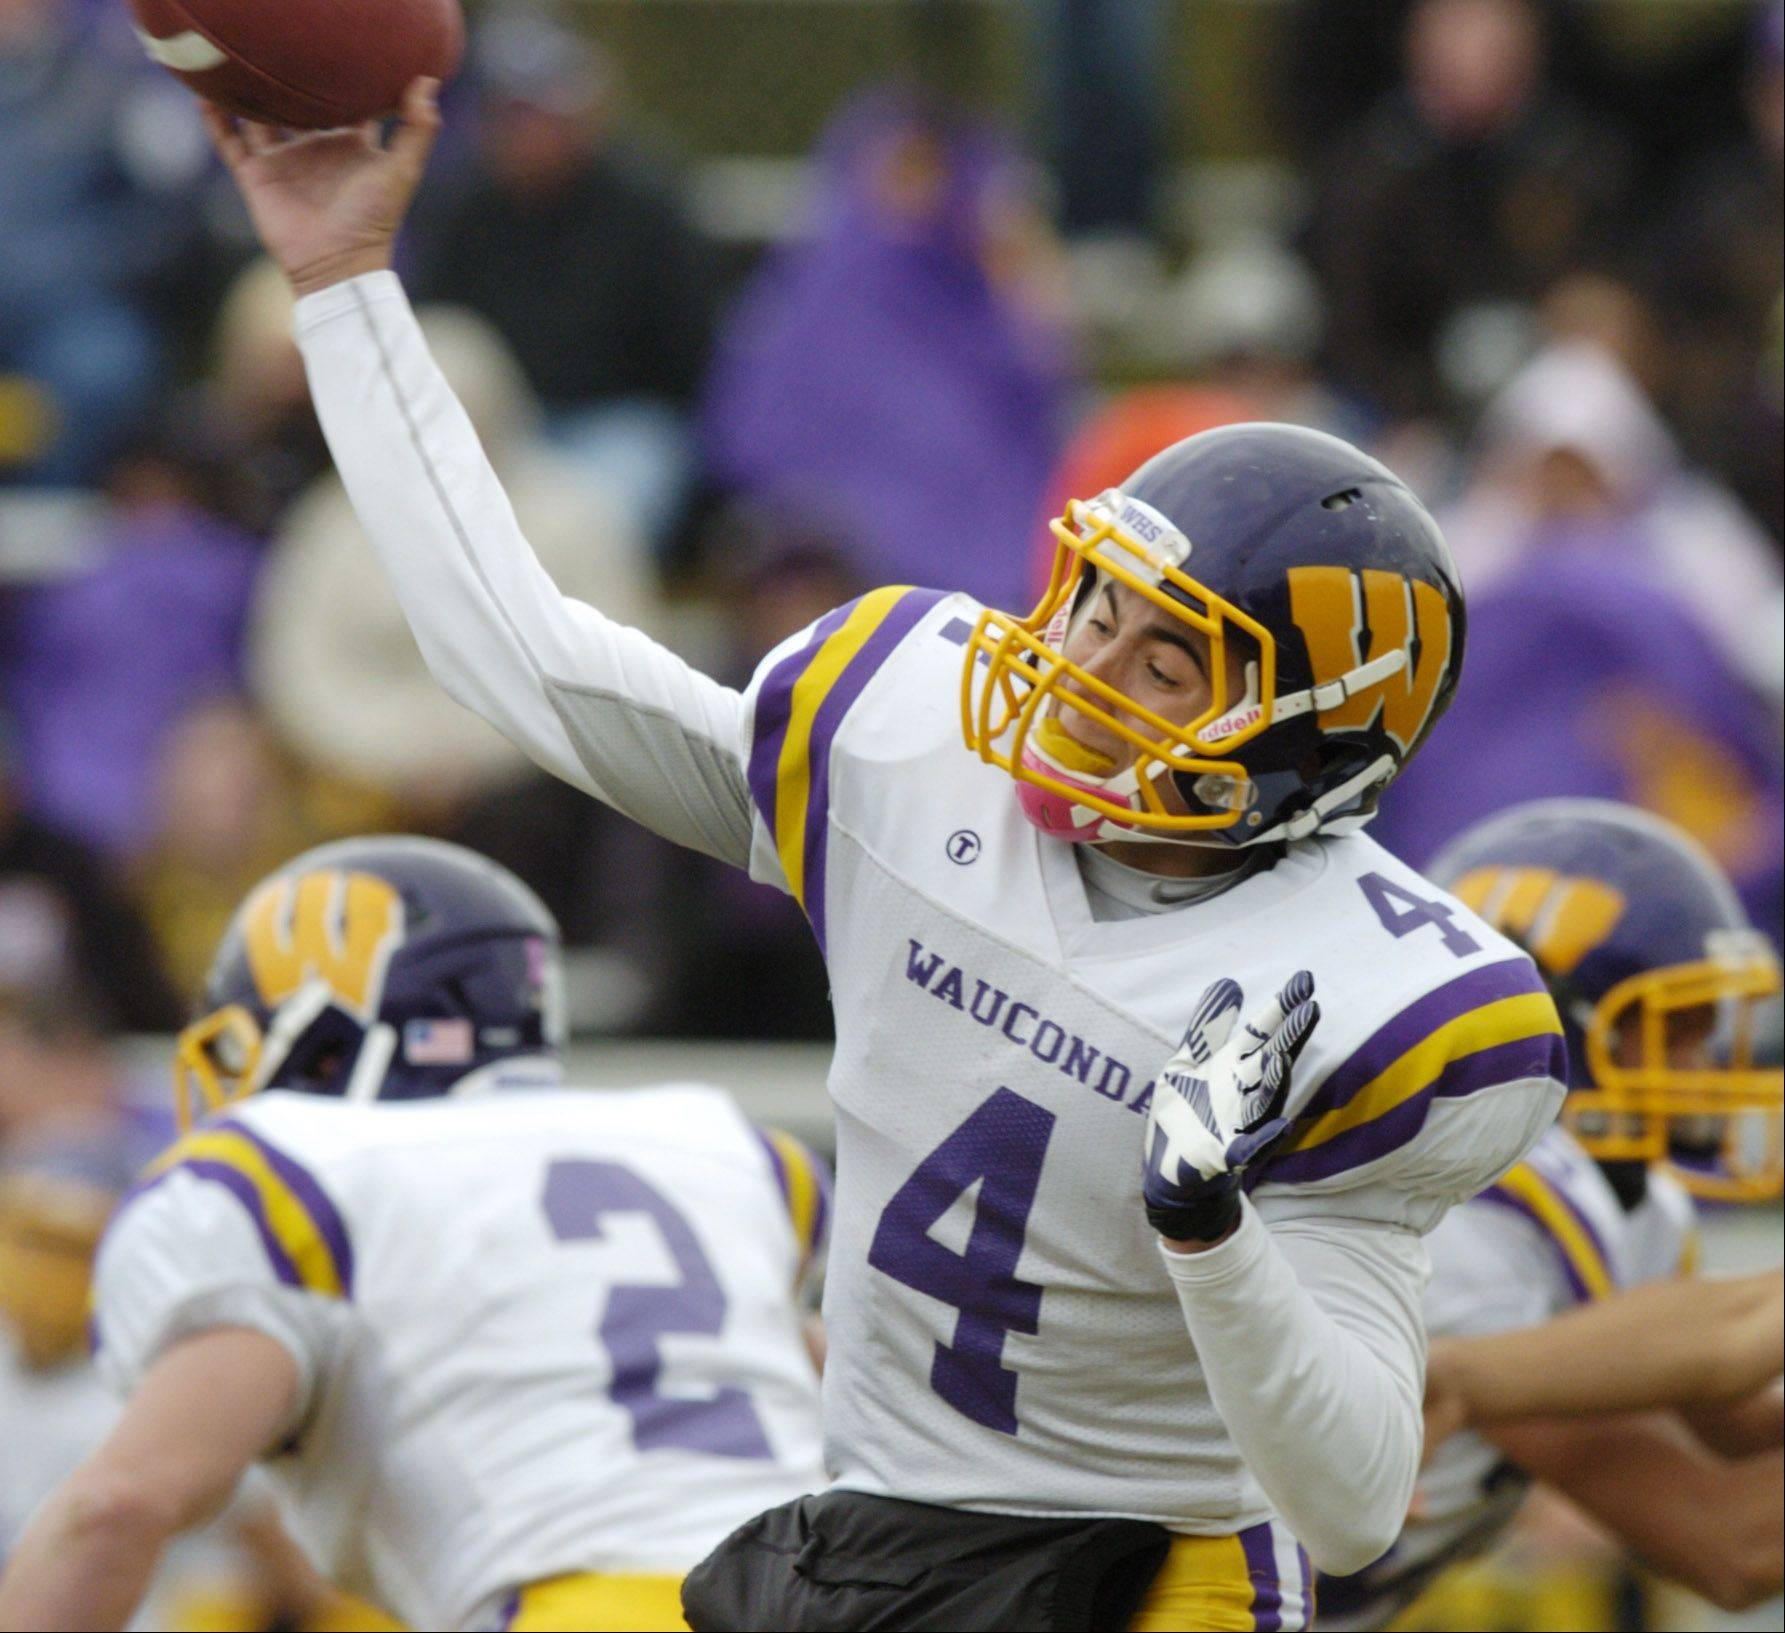 Wauconda quarterback Austin Swenson throws a pass during Saturday's game against Round Lake.